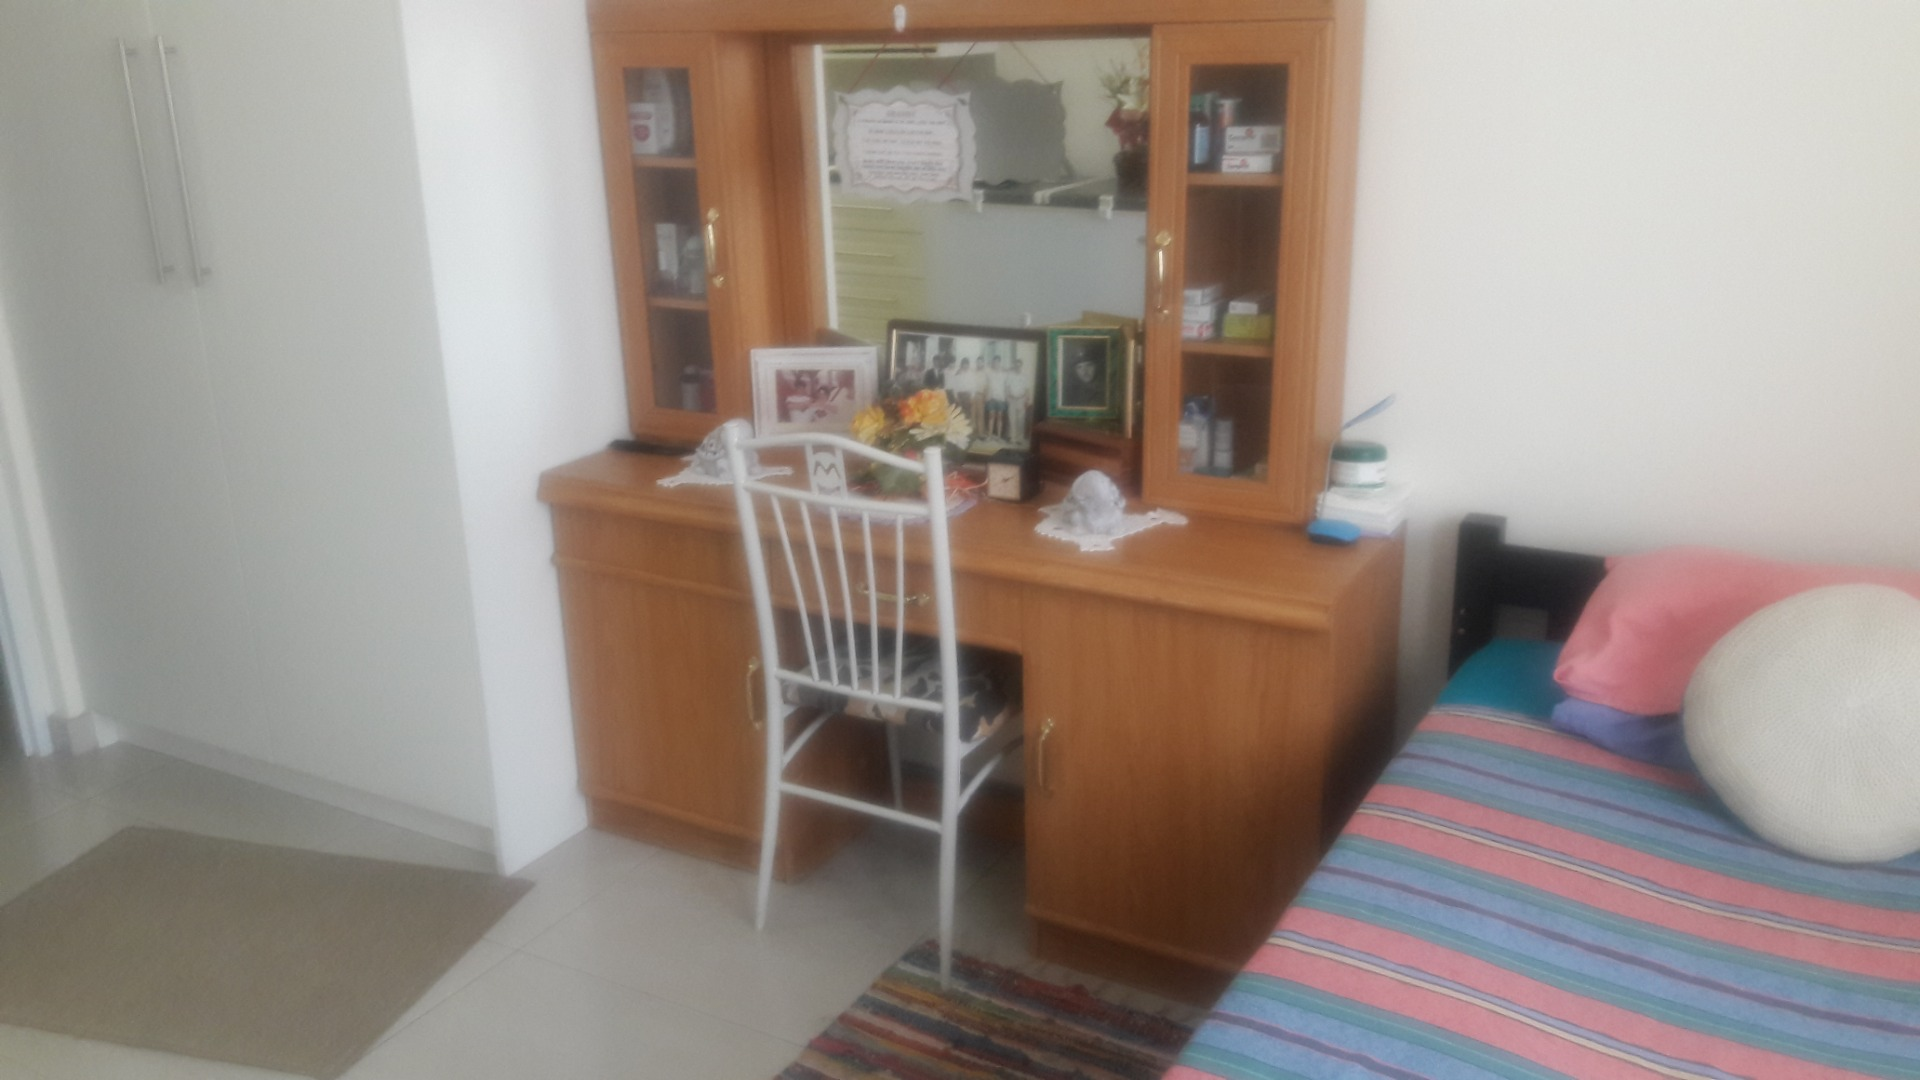 1 Bedroom Apartment / Flat For Sale in Auasblick